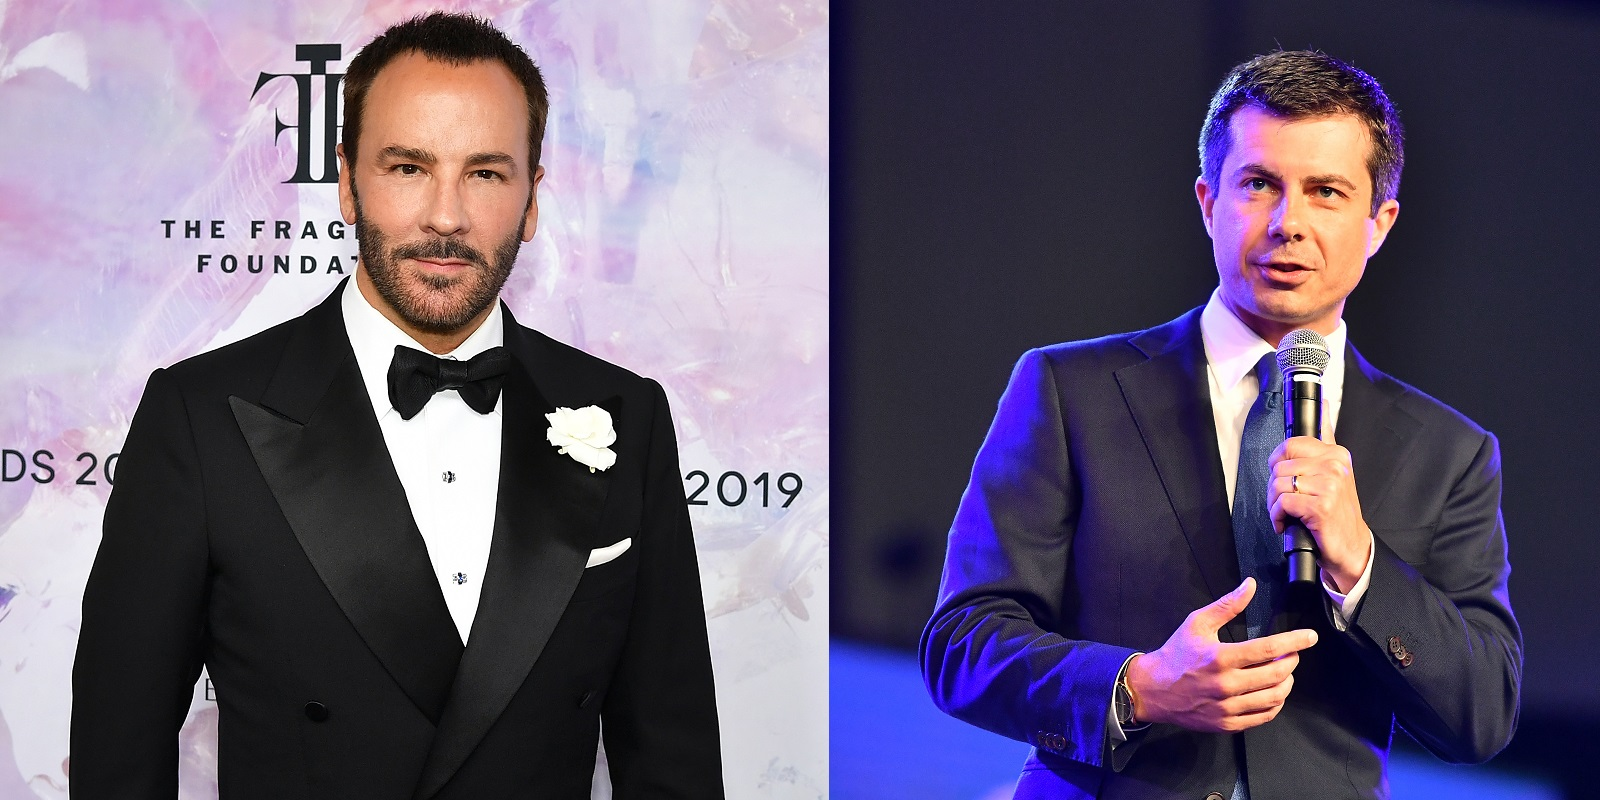 Fashion designer Tom Ford offered to fix Pete Buttigieg's ill-fitting suits